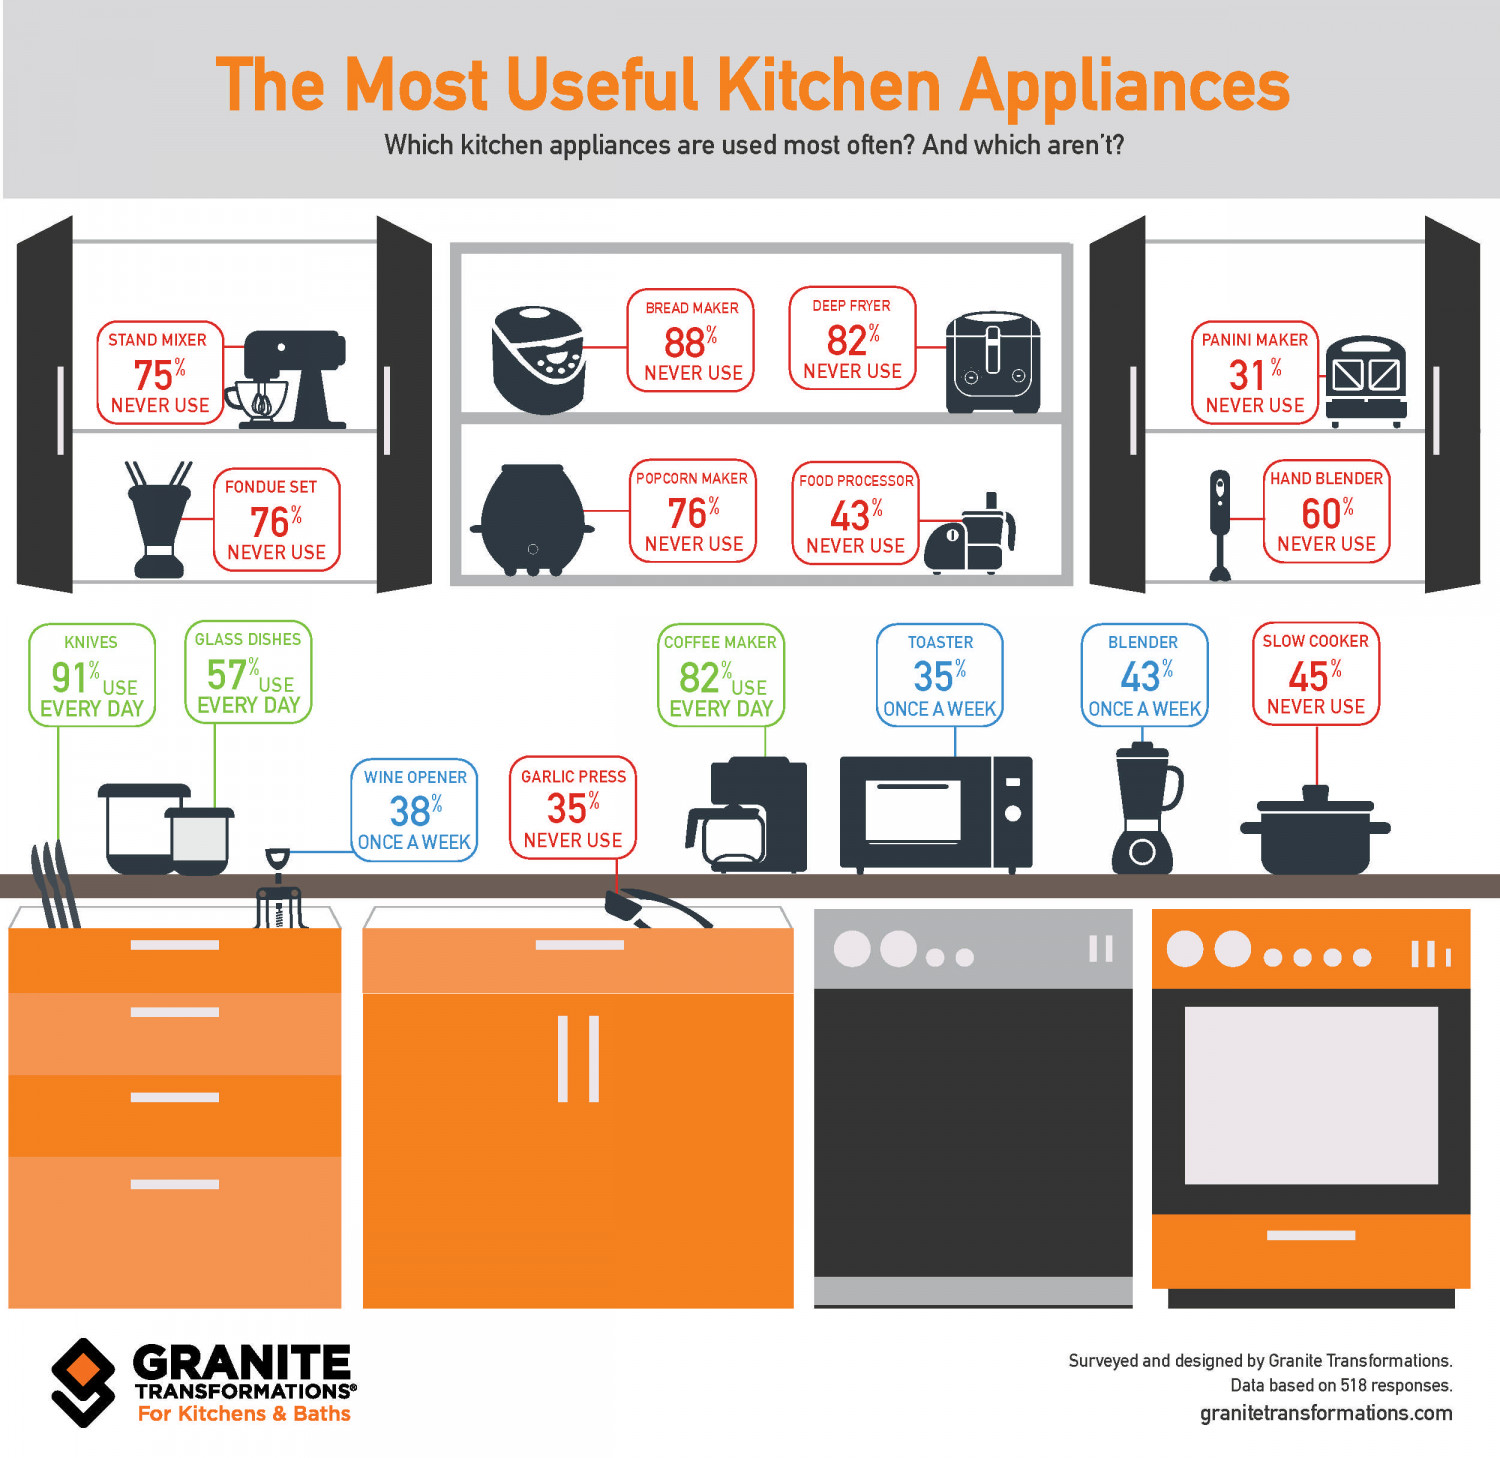 The Most Useful Kitchen Appliances  Visually. Kitchen And Pooja Room Vastu. White Kitchen Vent Hood. Colour Kitchen Utrecht Adres. Granite Kitchen Island With Seating. Little Kitchen St Ives. White Kitchen Grey Tile Floor. Kitchen Plant Pots. Kitchen Door To Outside